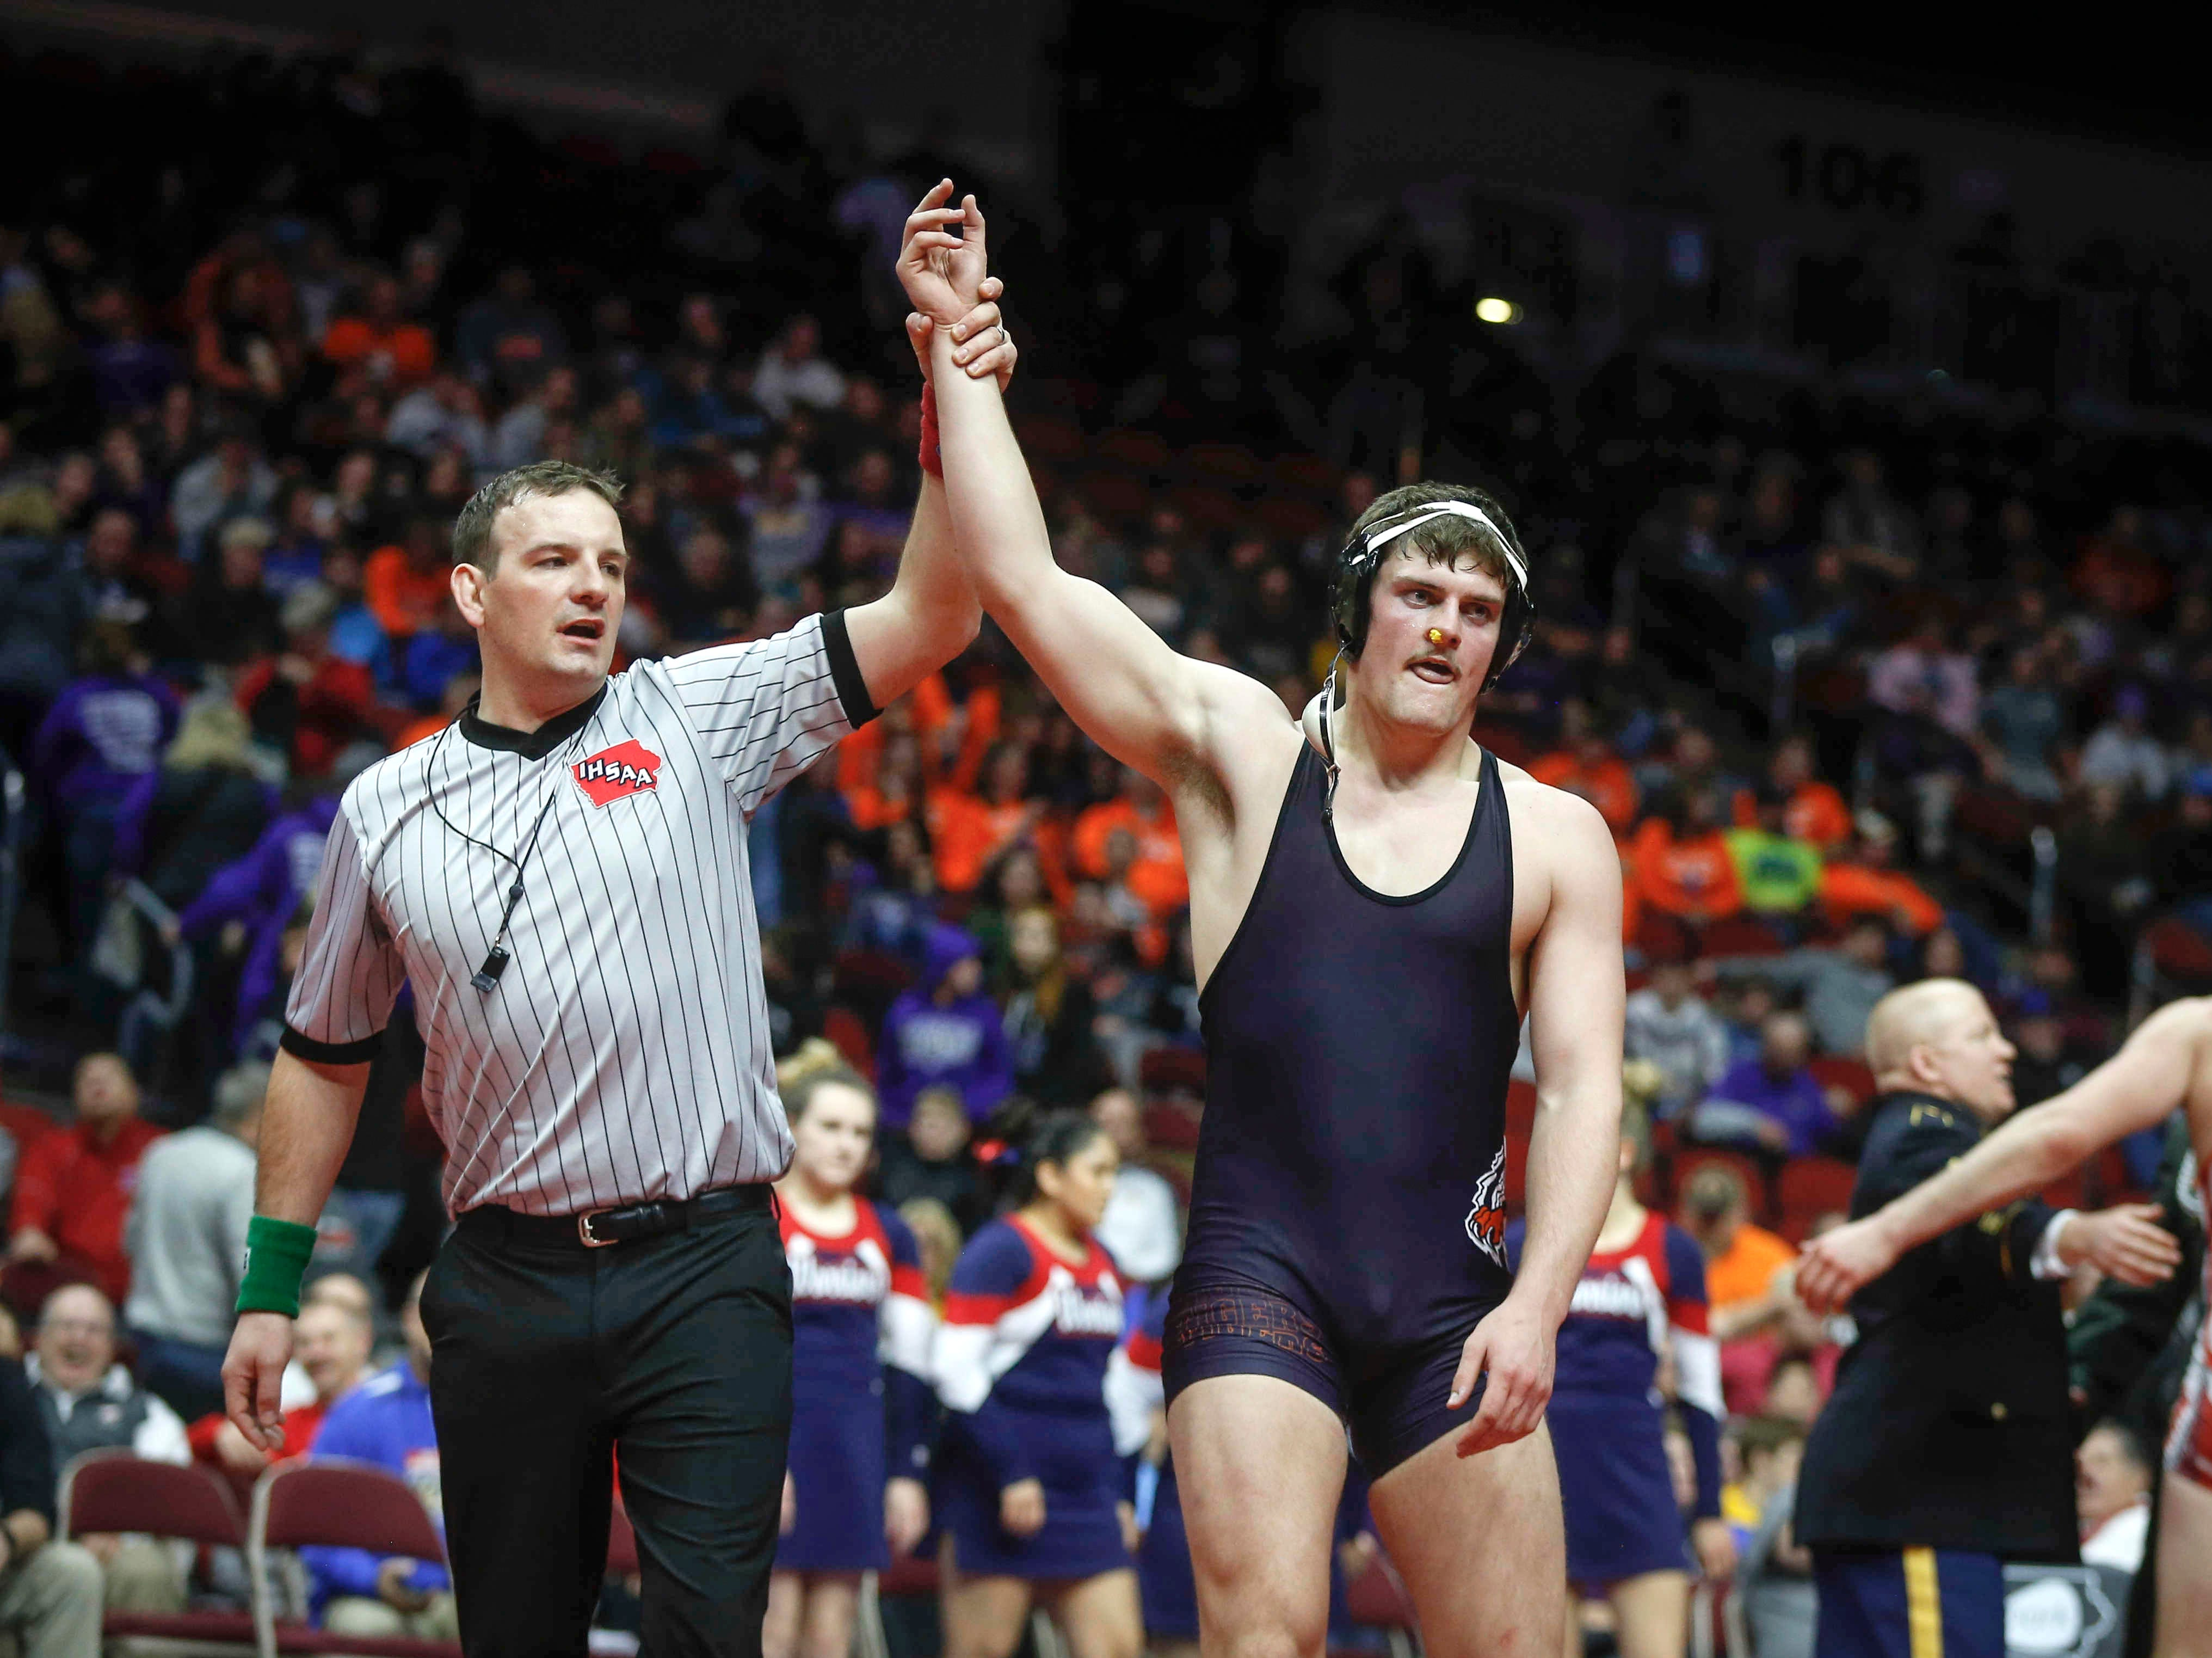 Iowa Valley senior Garet Sims celebrates after beating Alta-Auralia senior Nick Gaes for a Class 1A state title win at 220 pounds on Saturday, Feb. 16, 2019, at Wells Fargo Arena in Des Moines.